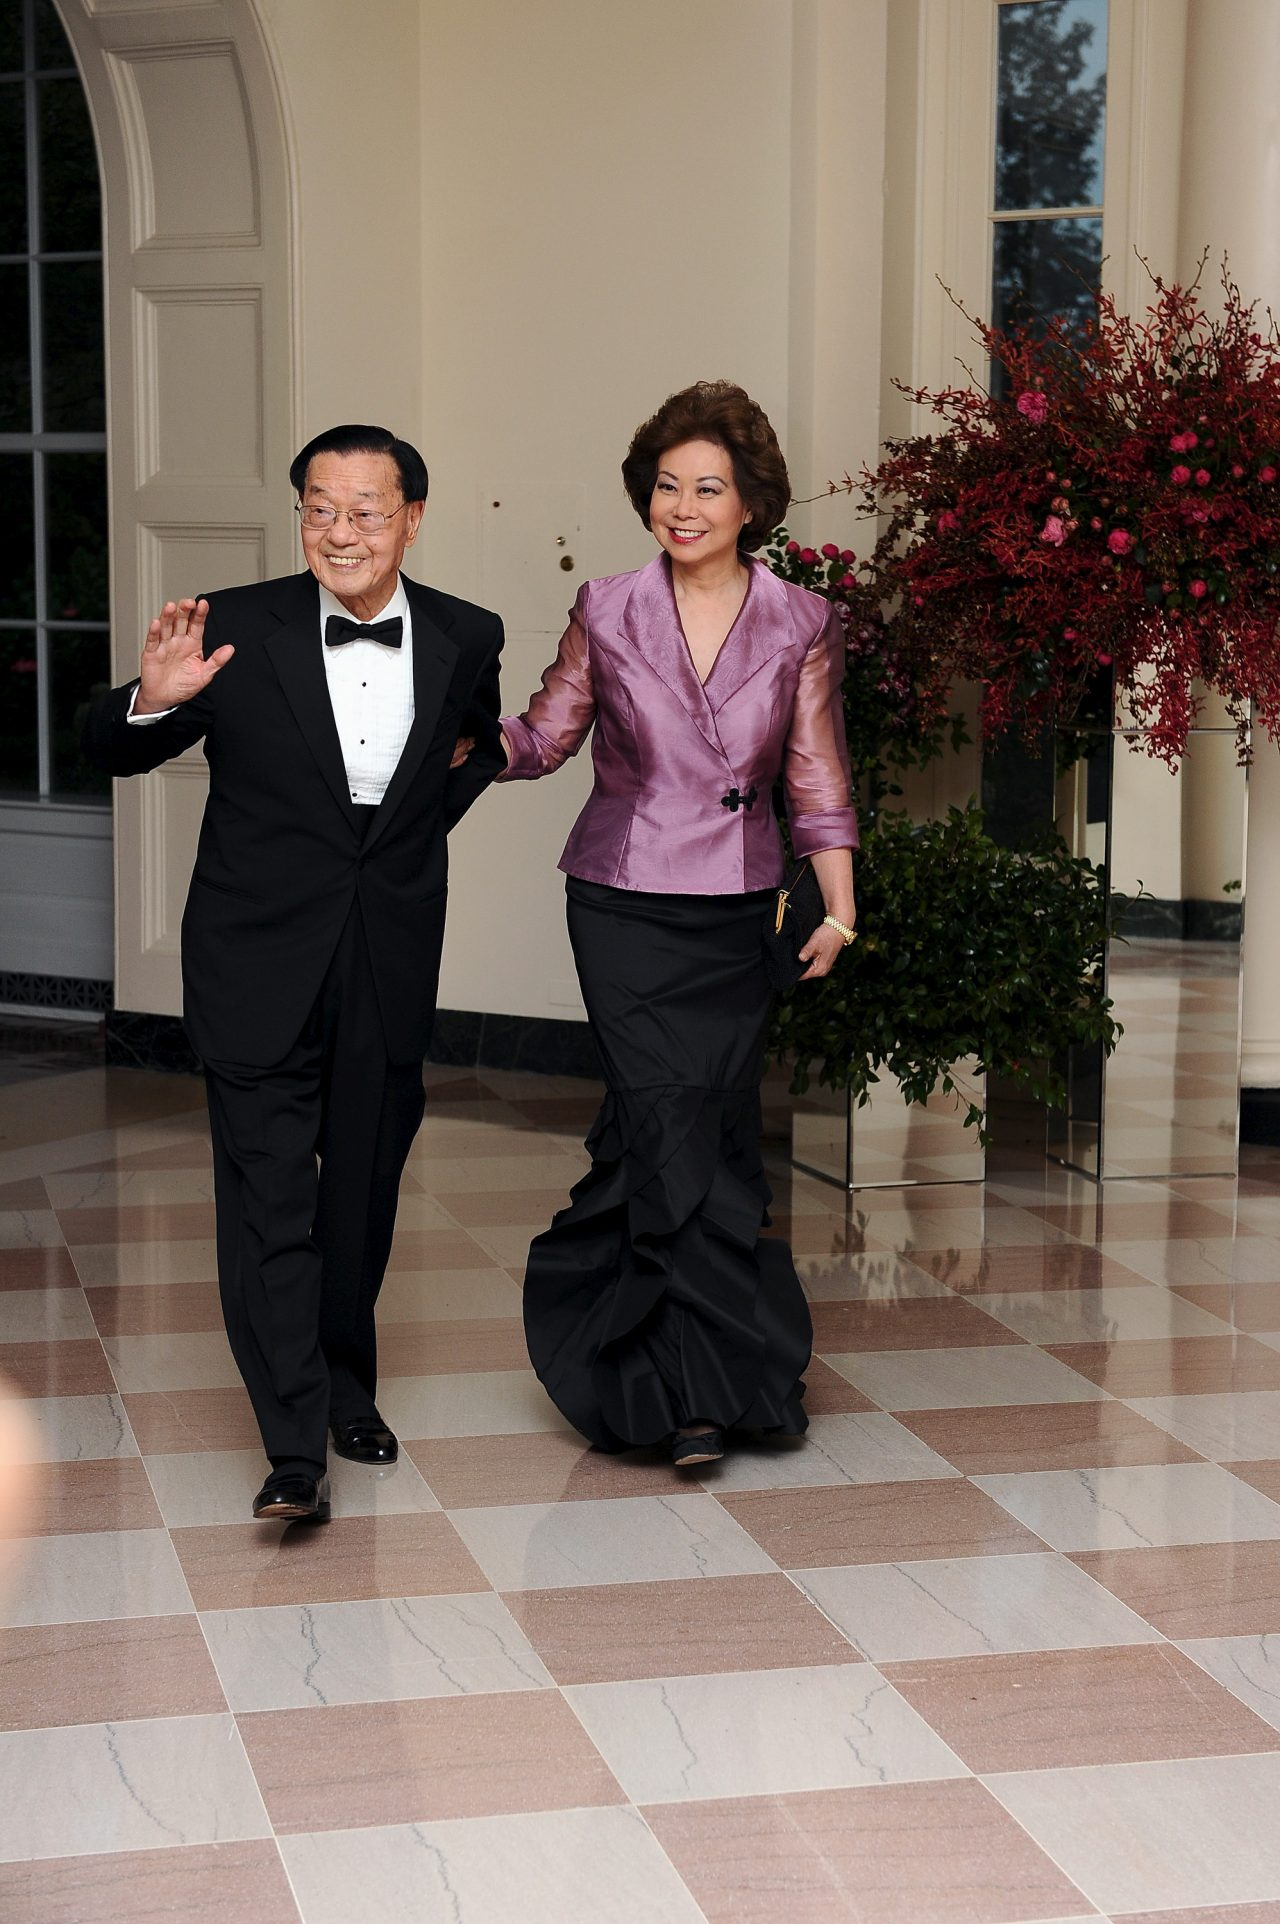 The Honorable Elaine Chao and her father, Dr. James S. C. Chao, arrive for the State dinner for Chinese President Xi Jinping and First Lady Peng Liyuan at the White House in Washington, D.C.